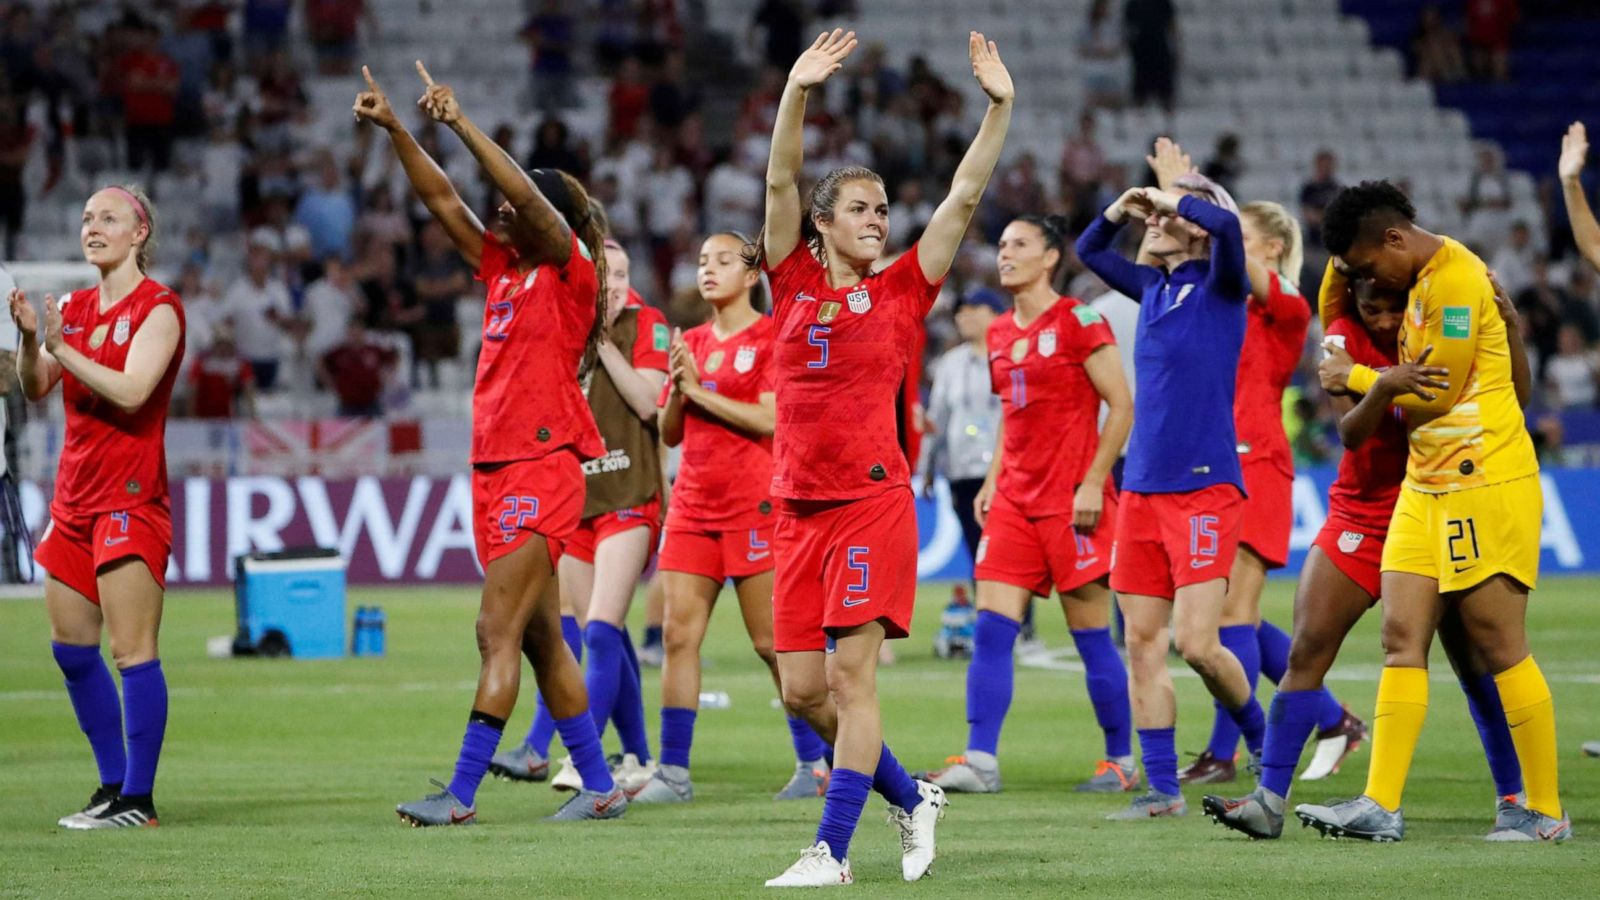 US vs. England in World Cup: US wins as Megan Rapinoe has 'minor strain' -  ABC News